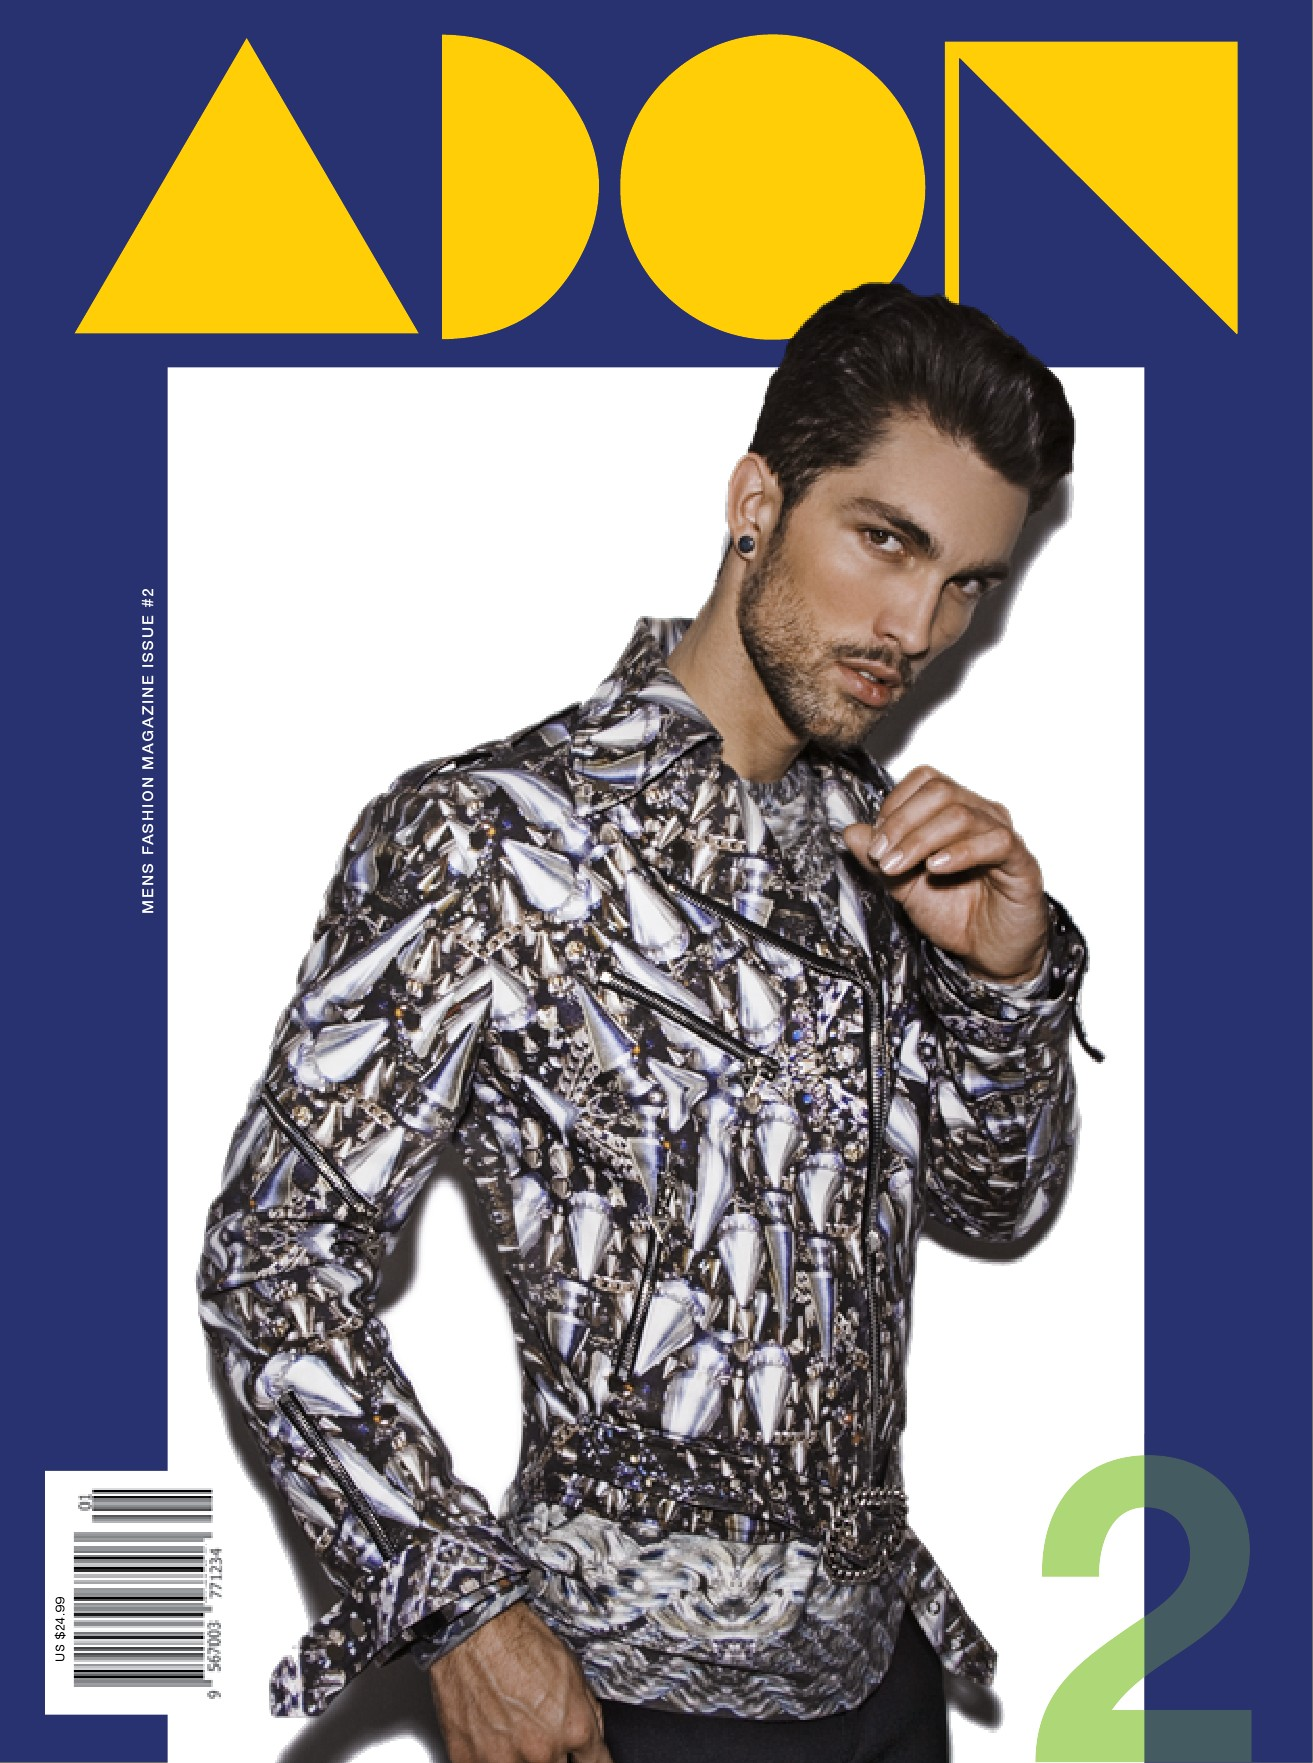 Tobias-Sorensen-ADON-Magazine-Issue2-Rck-Day-Roy-Fire-2013.jpg